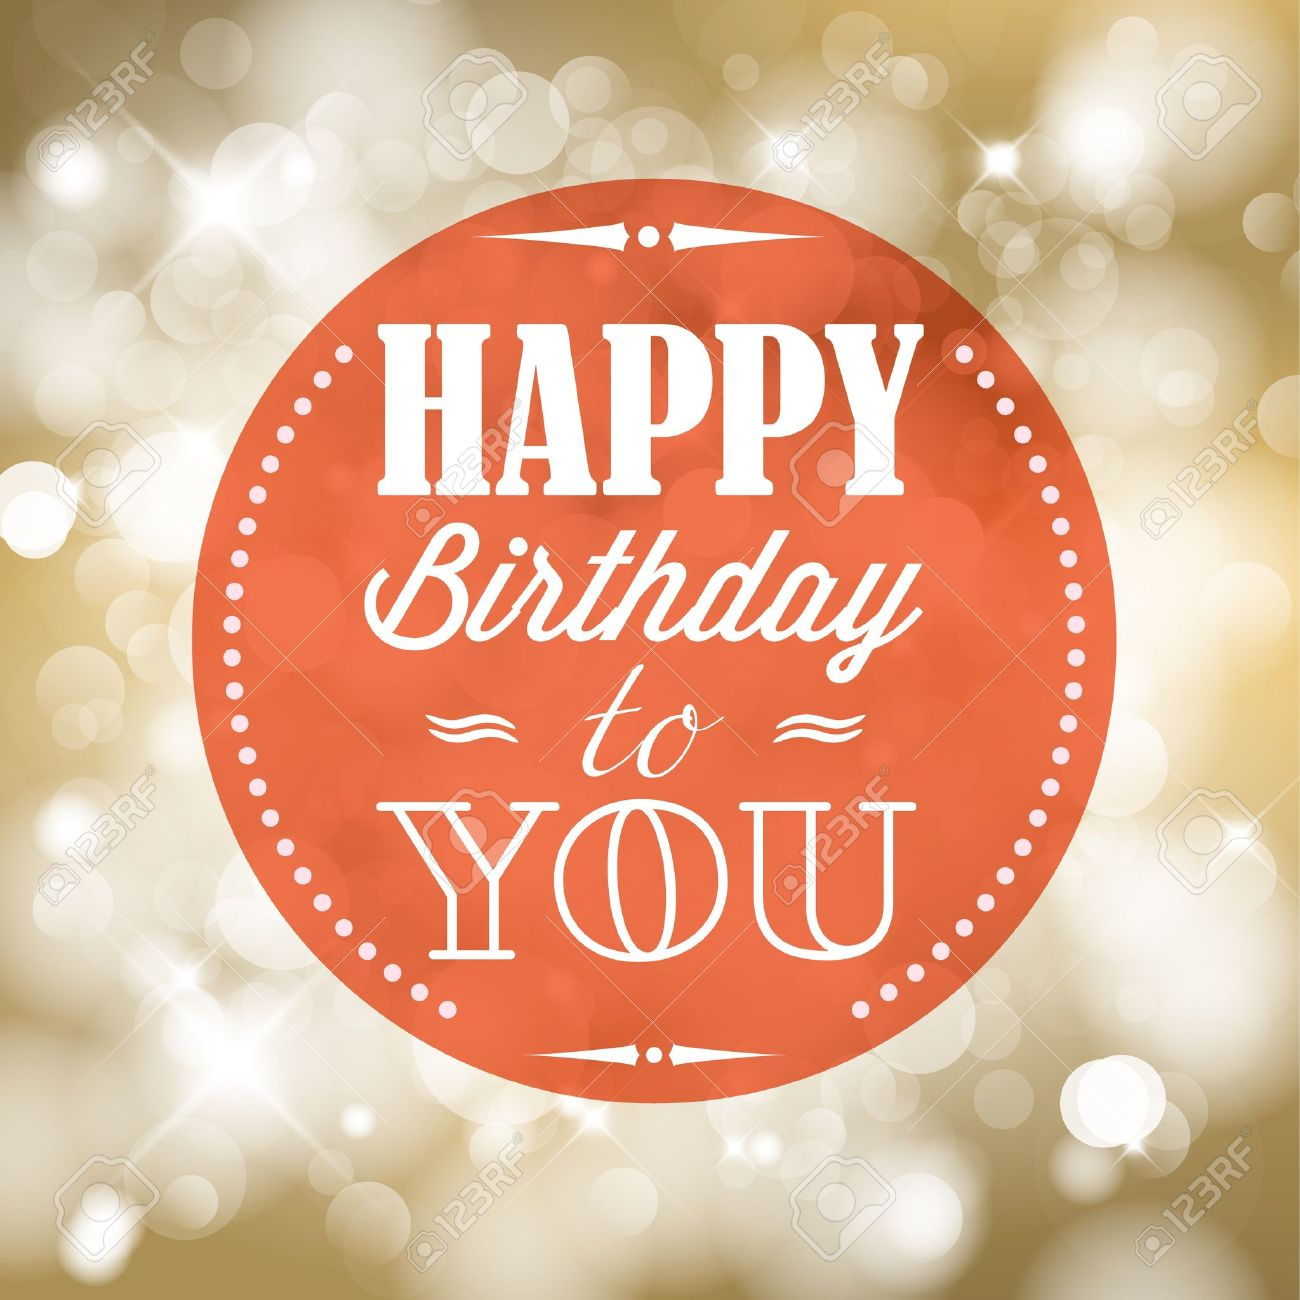 Happy birthday retro vector illustration with lights in background Stock Vector - 19108311